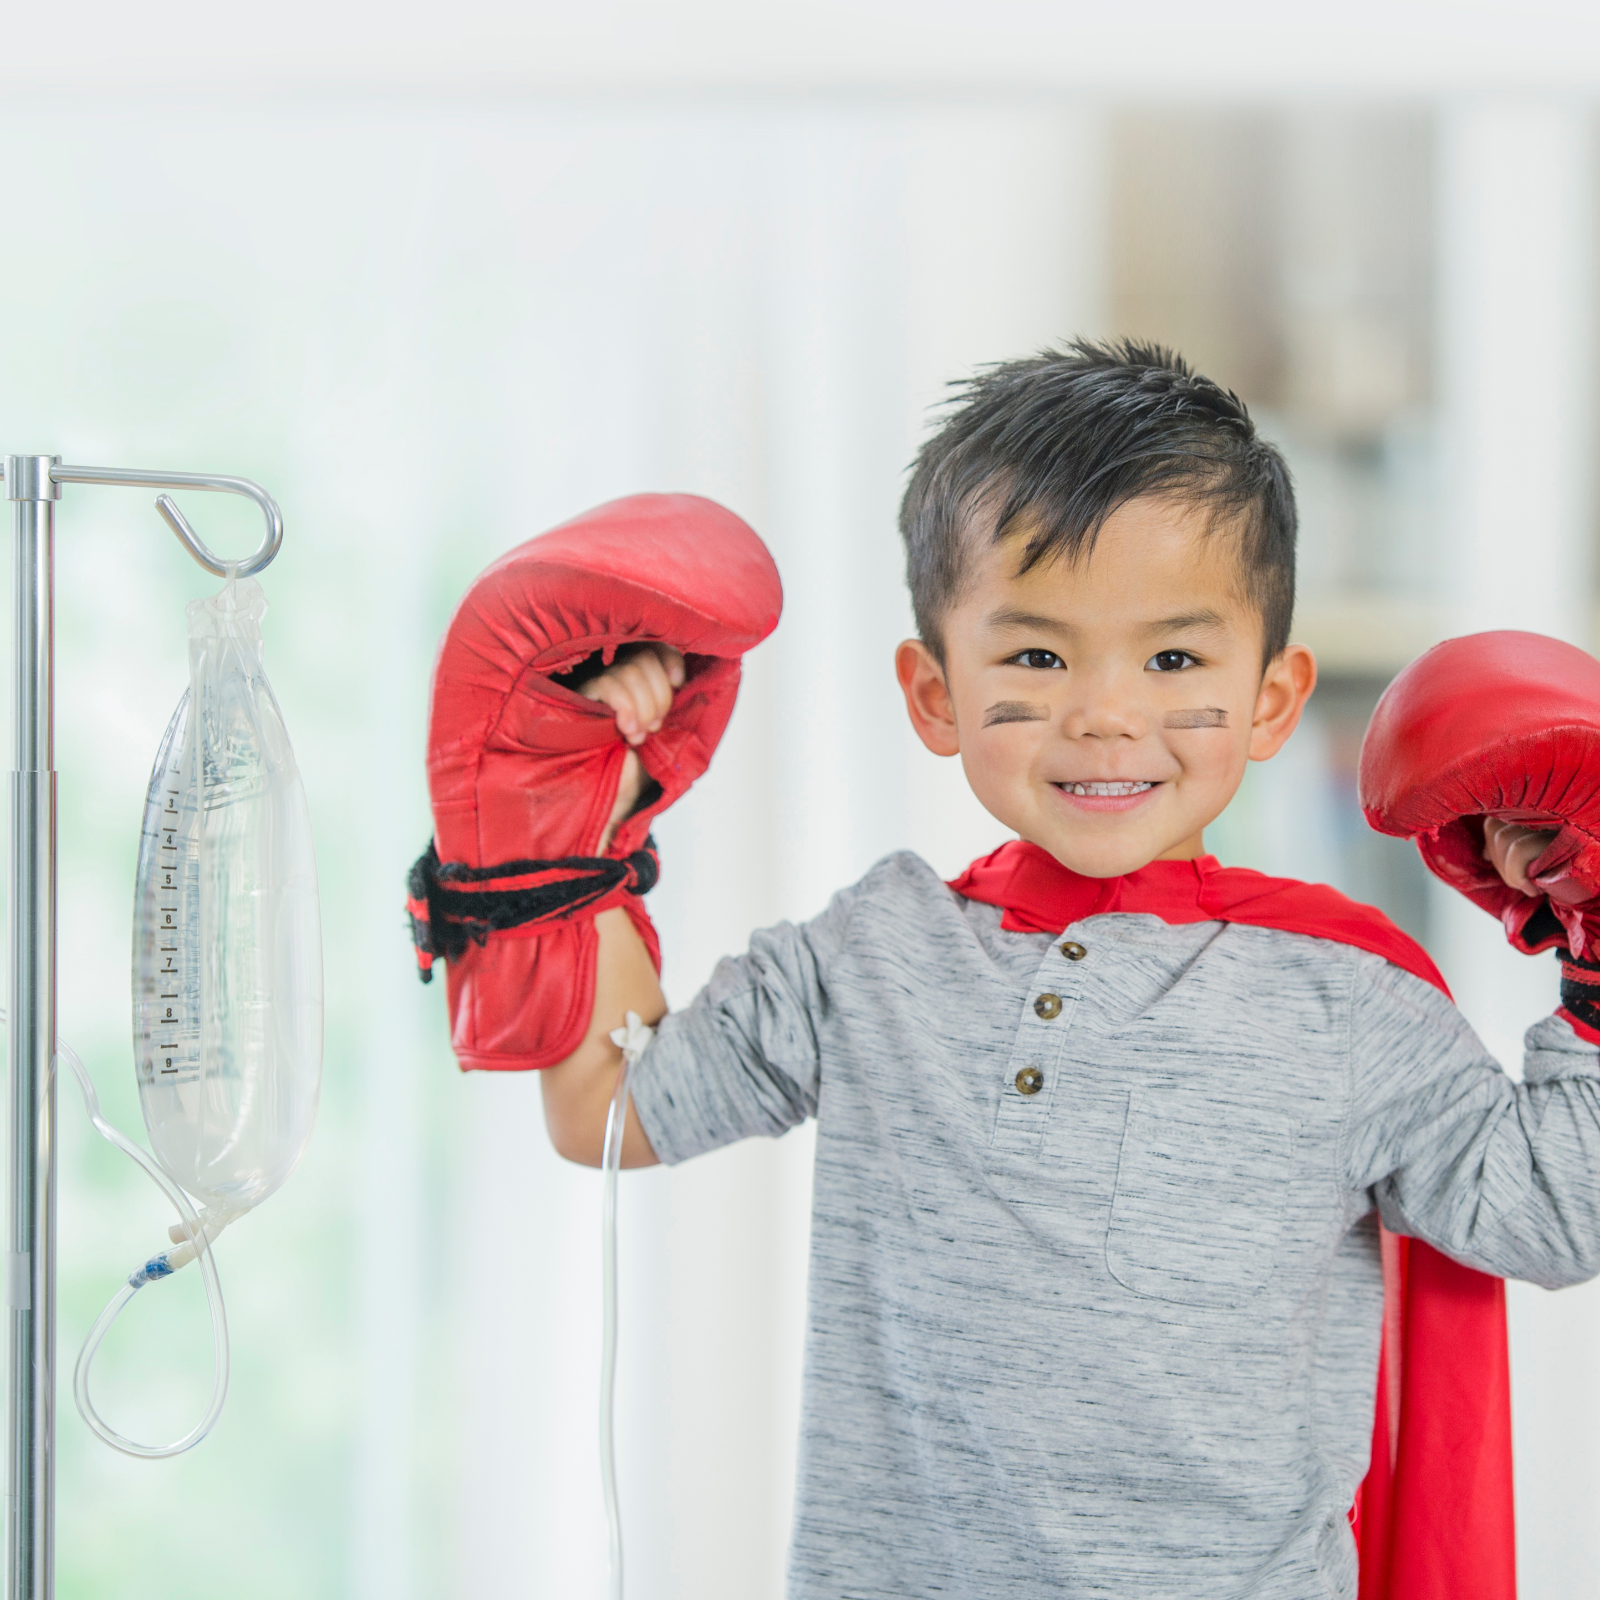 Little boy getting iv treatment wearing cape and boxing gloves